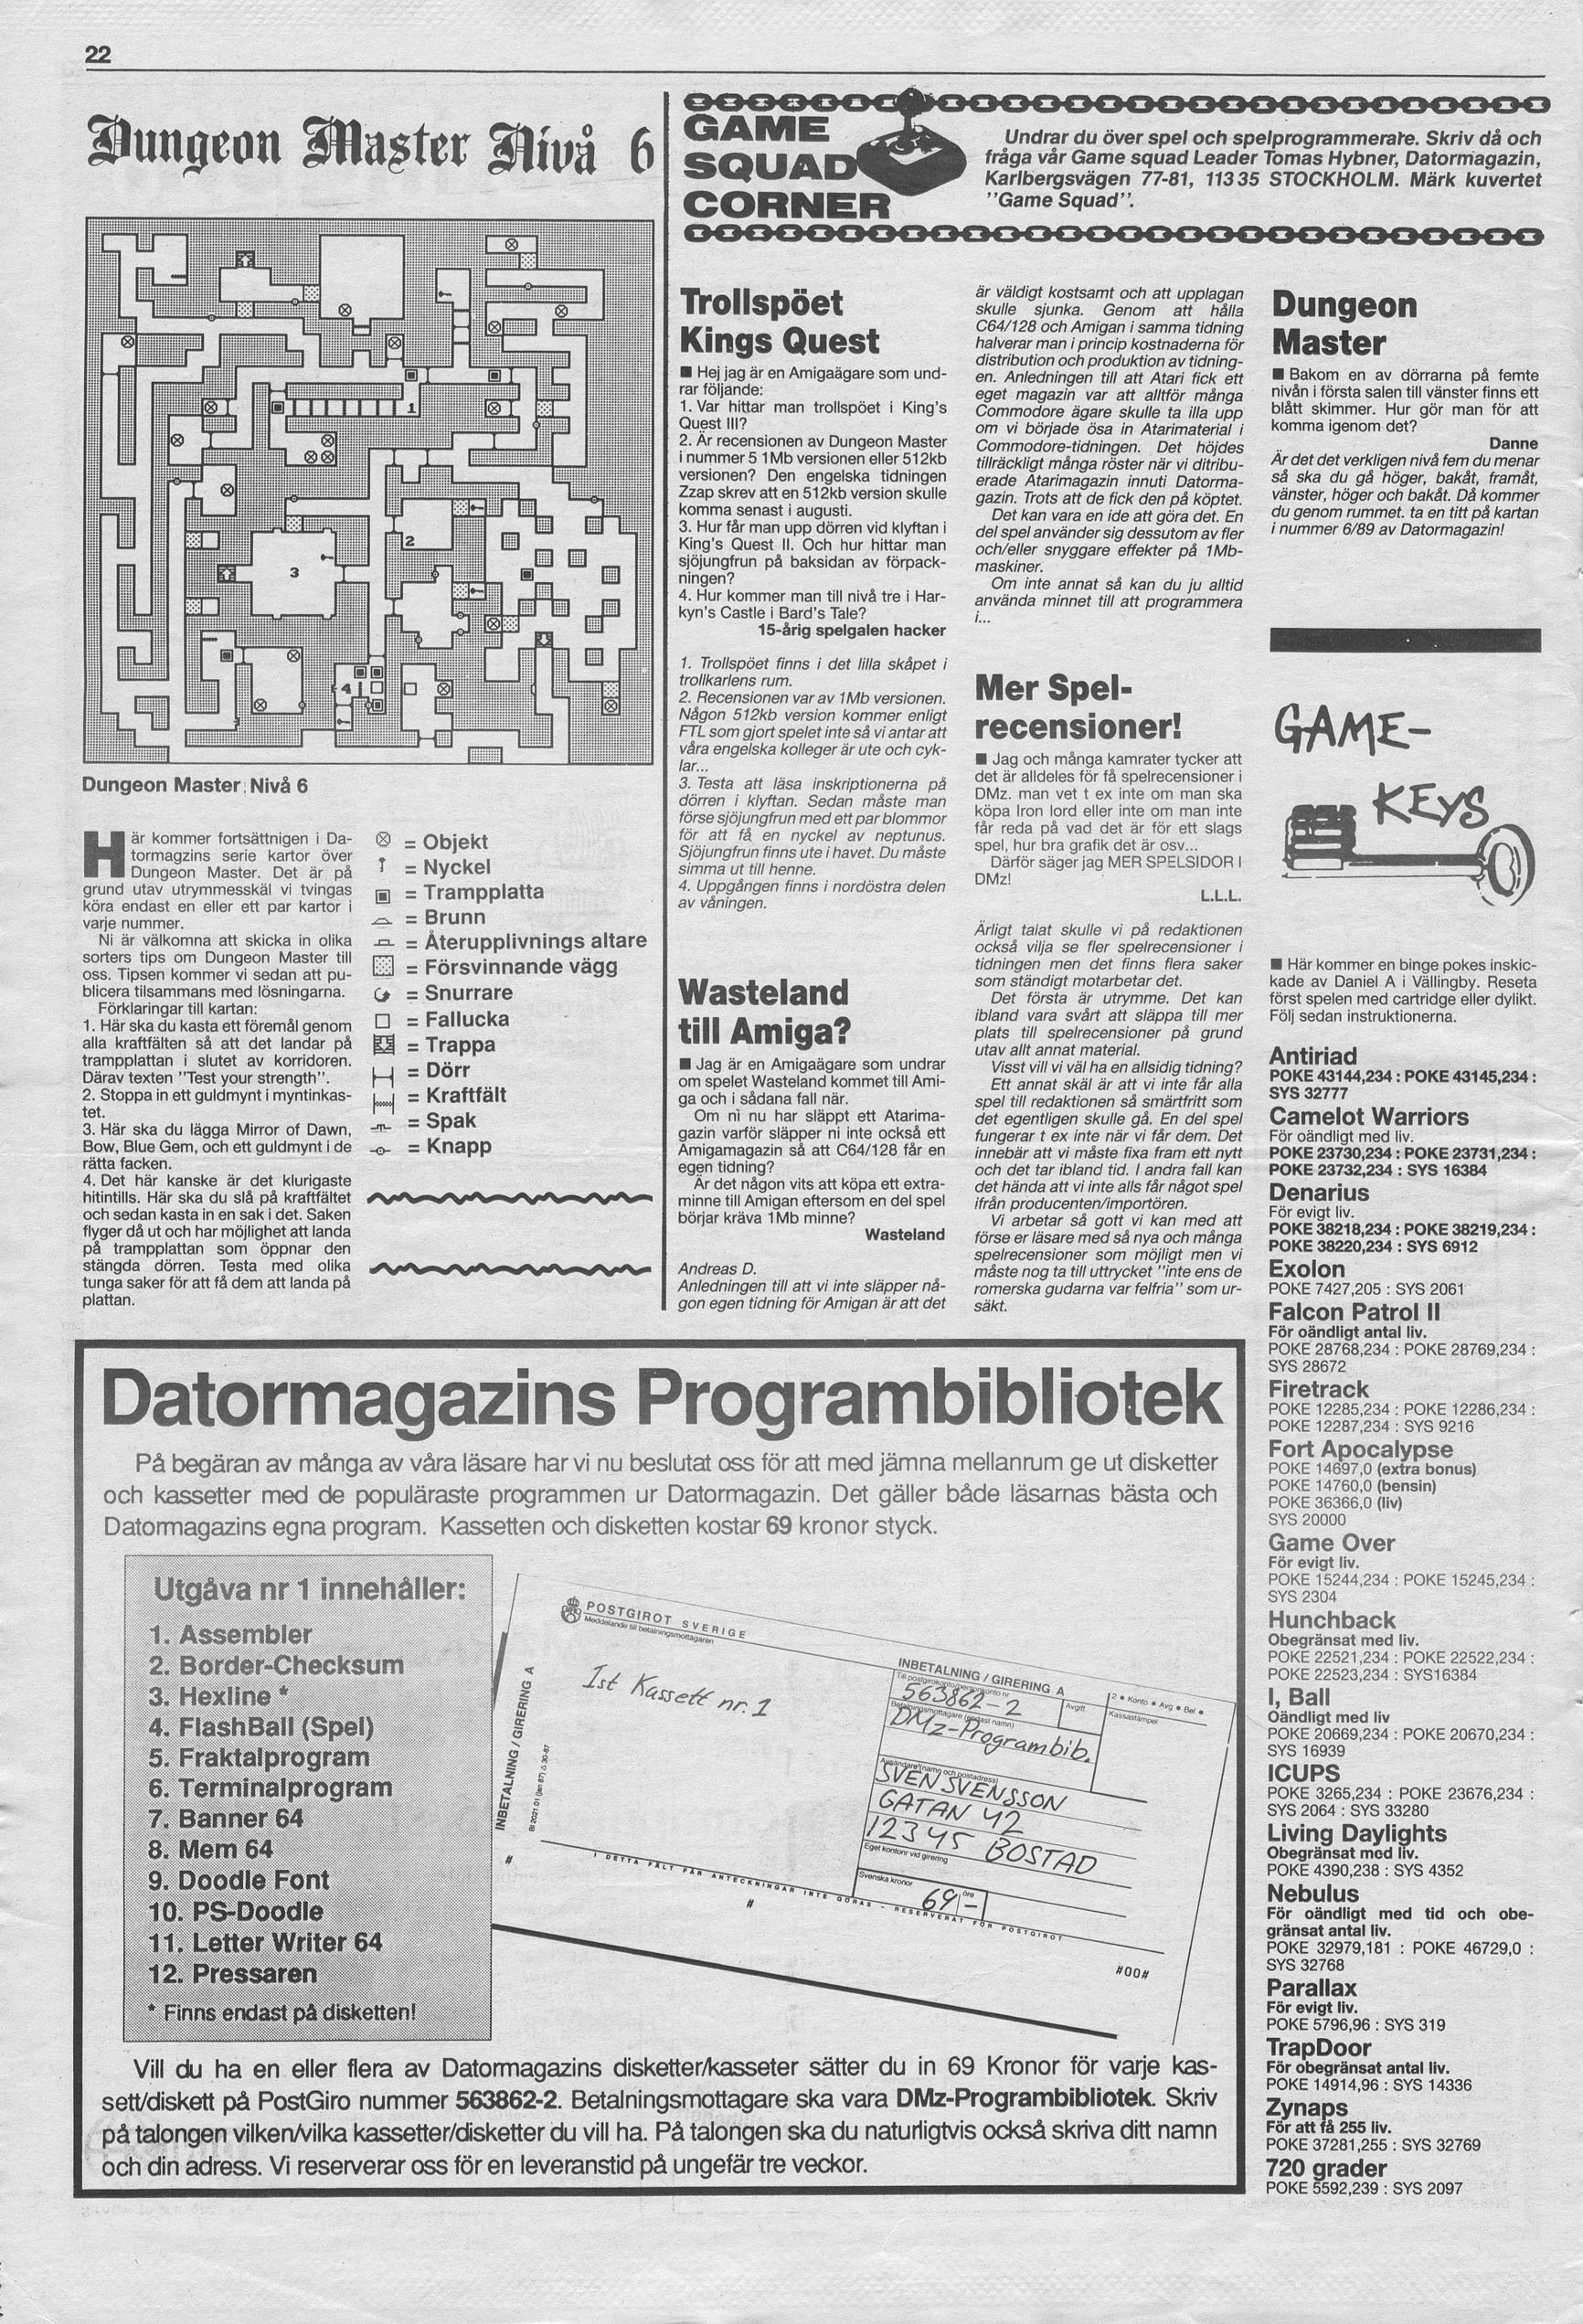 Dungeon Master Hints published in Swedish magazine 'Datormagazin', Vol. 1989 No. 7, May 1989, Page 22